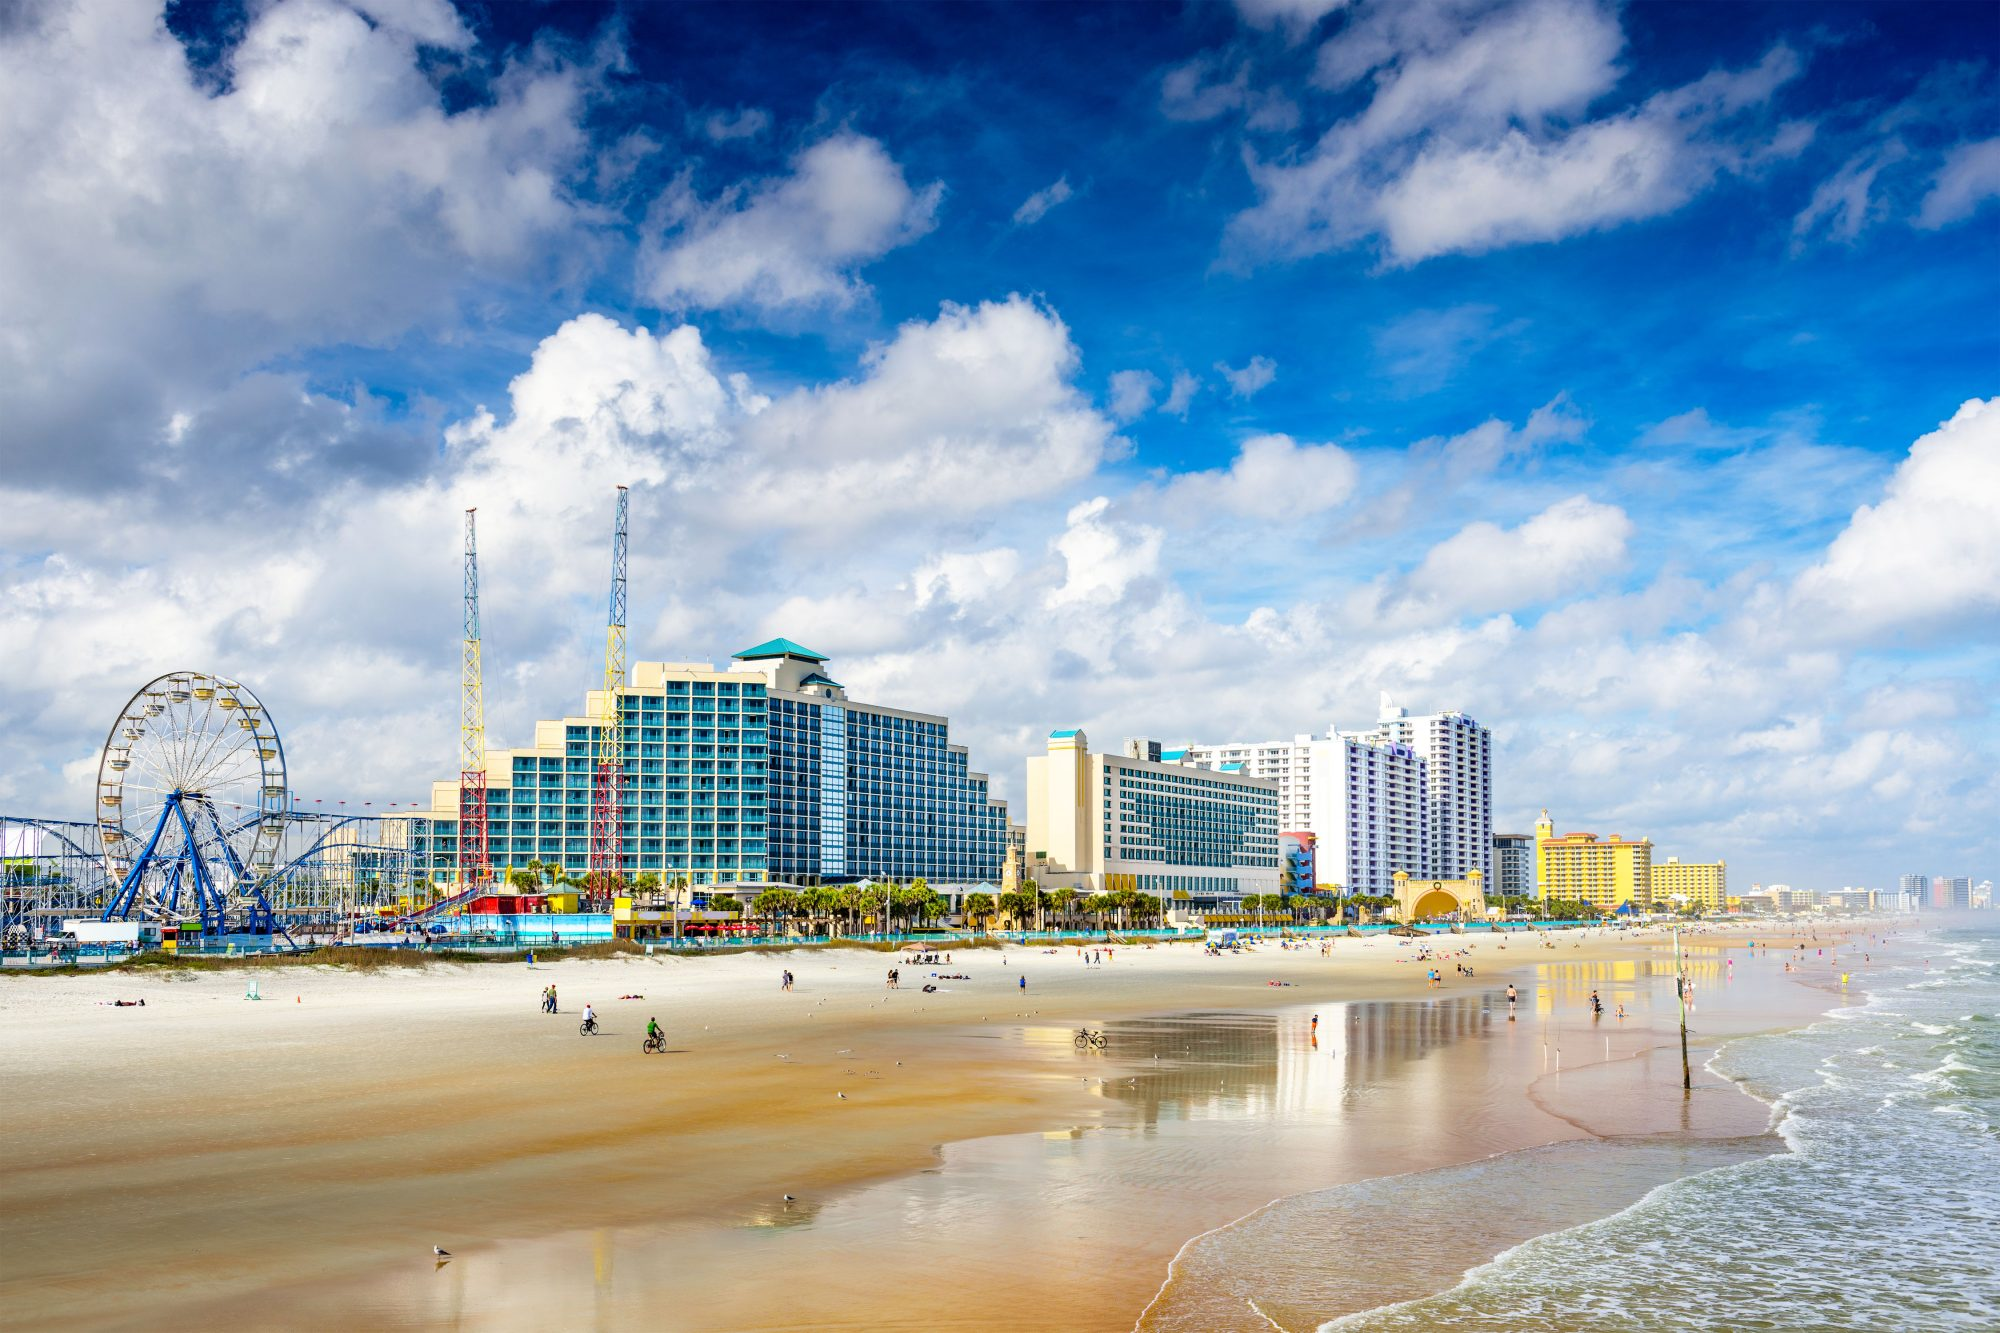 Known for the spring breakers who arrive each March and April and for NASCAR, Daytona Beach also boasts a recovering real estate market, where a single-family home within walking distance of the beach is still available for less than $200,000....